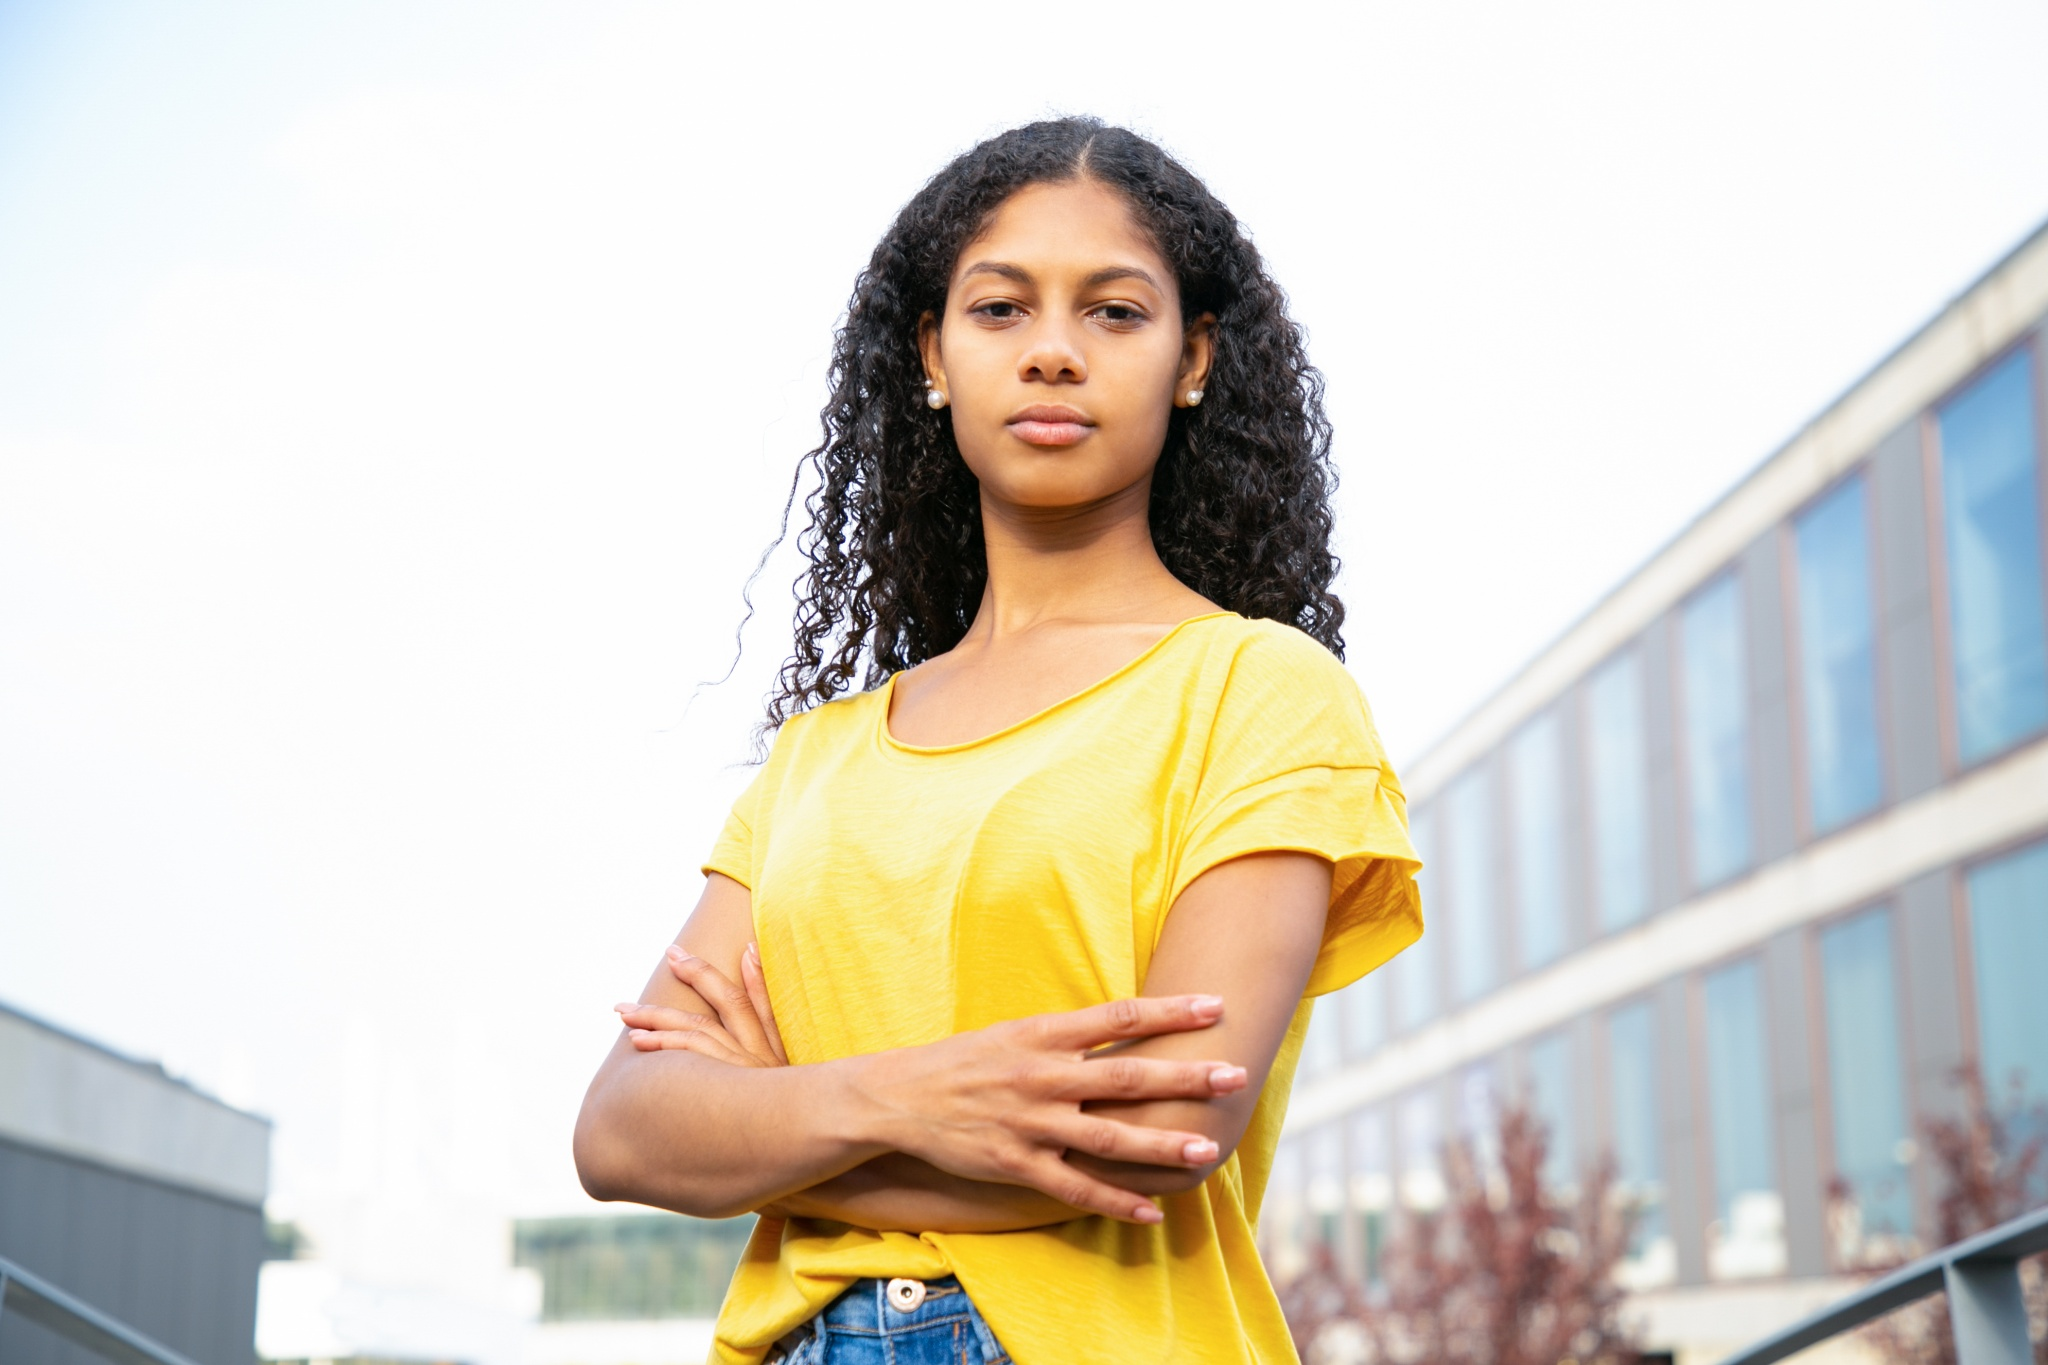 Serious confident student girl standing for camera with folded arms. Young Latin woman in bright casual shirt posing in urban settings. Confident woman portrait concept